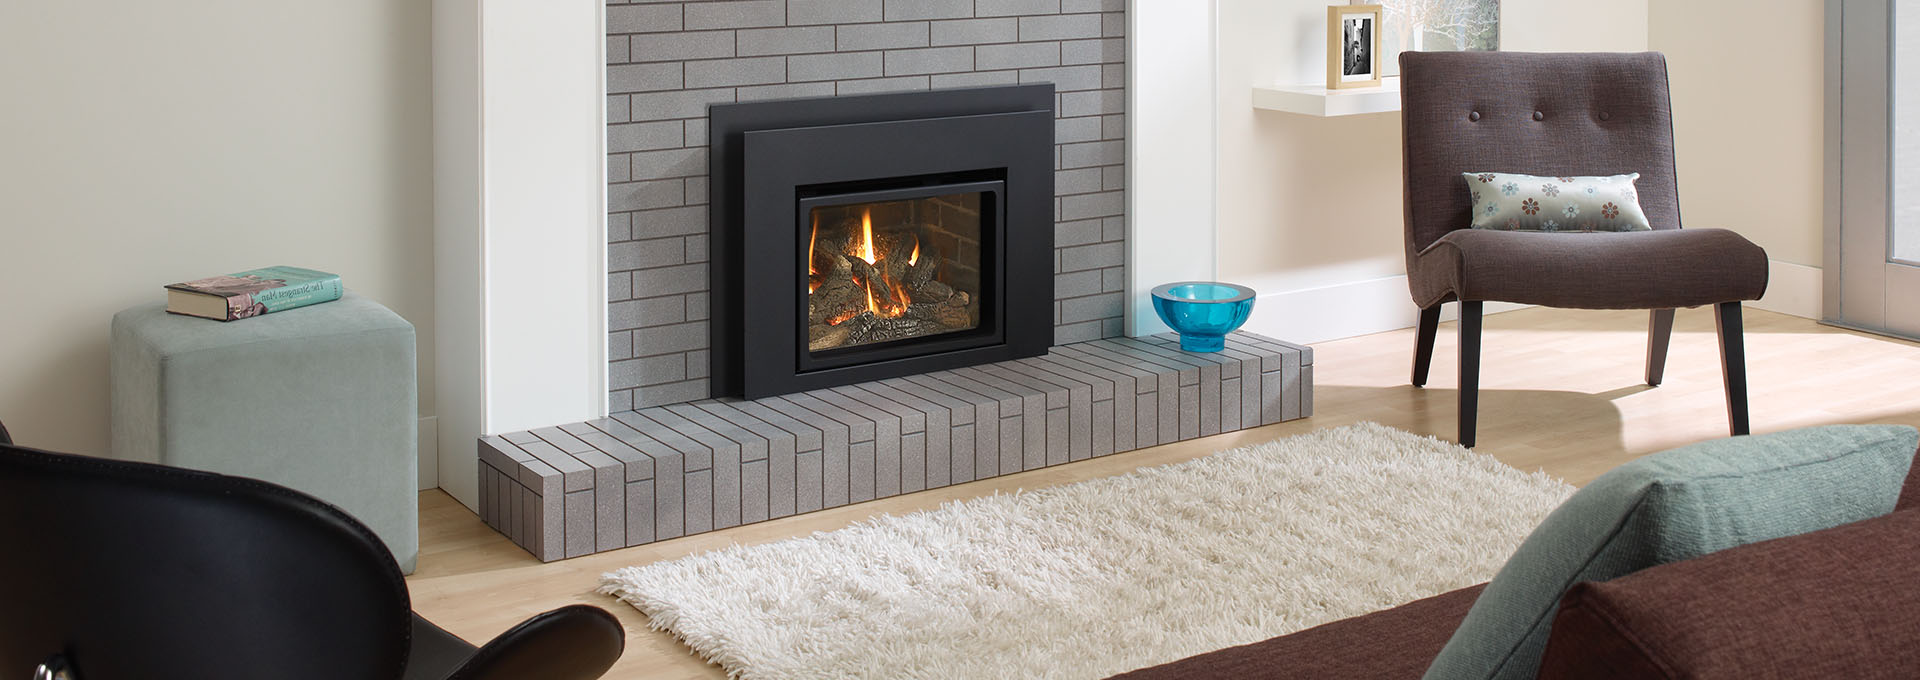 Gas Fireplace Store Regency Liberty L234 Gas Insert Welenco Stove Store